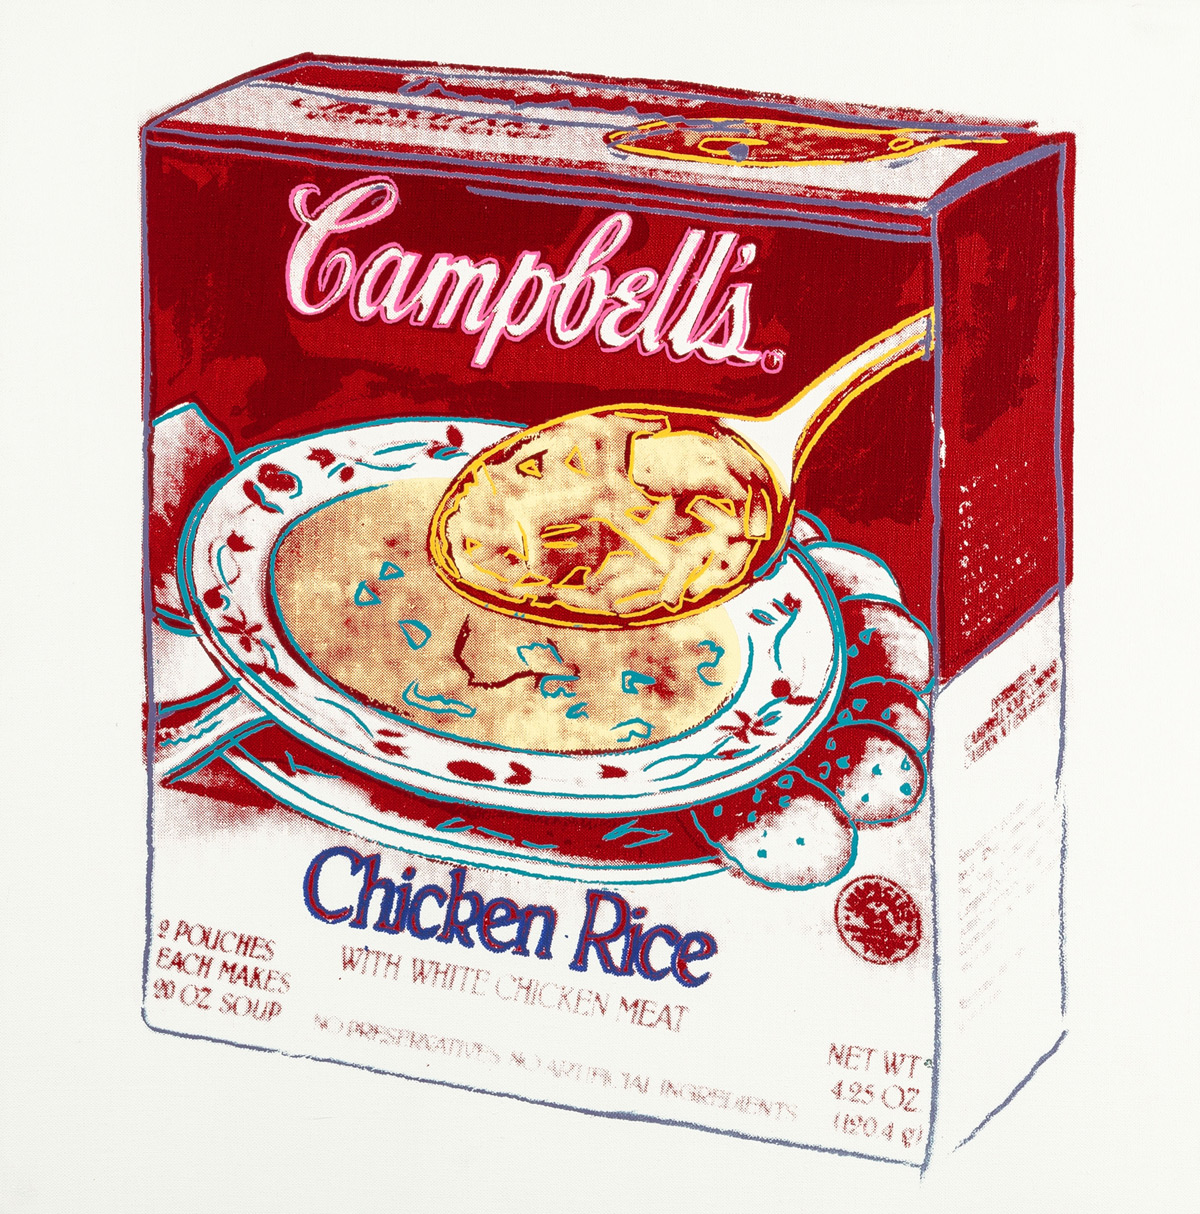 Andy Warhol's Iconic Campbell's Soup Box From 1986 Could Fetch $150,000 At Auction